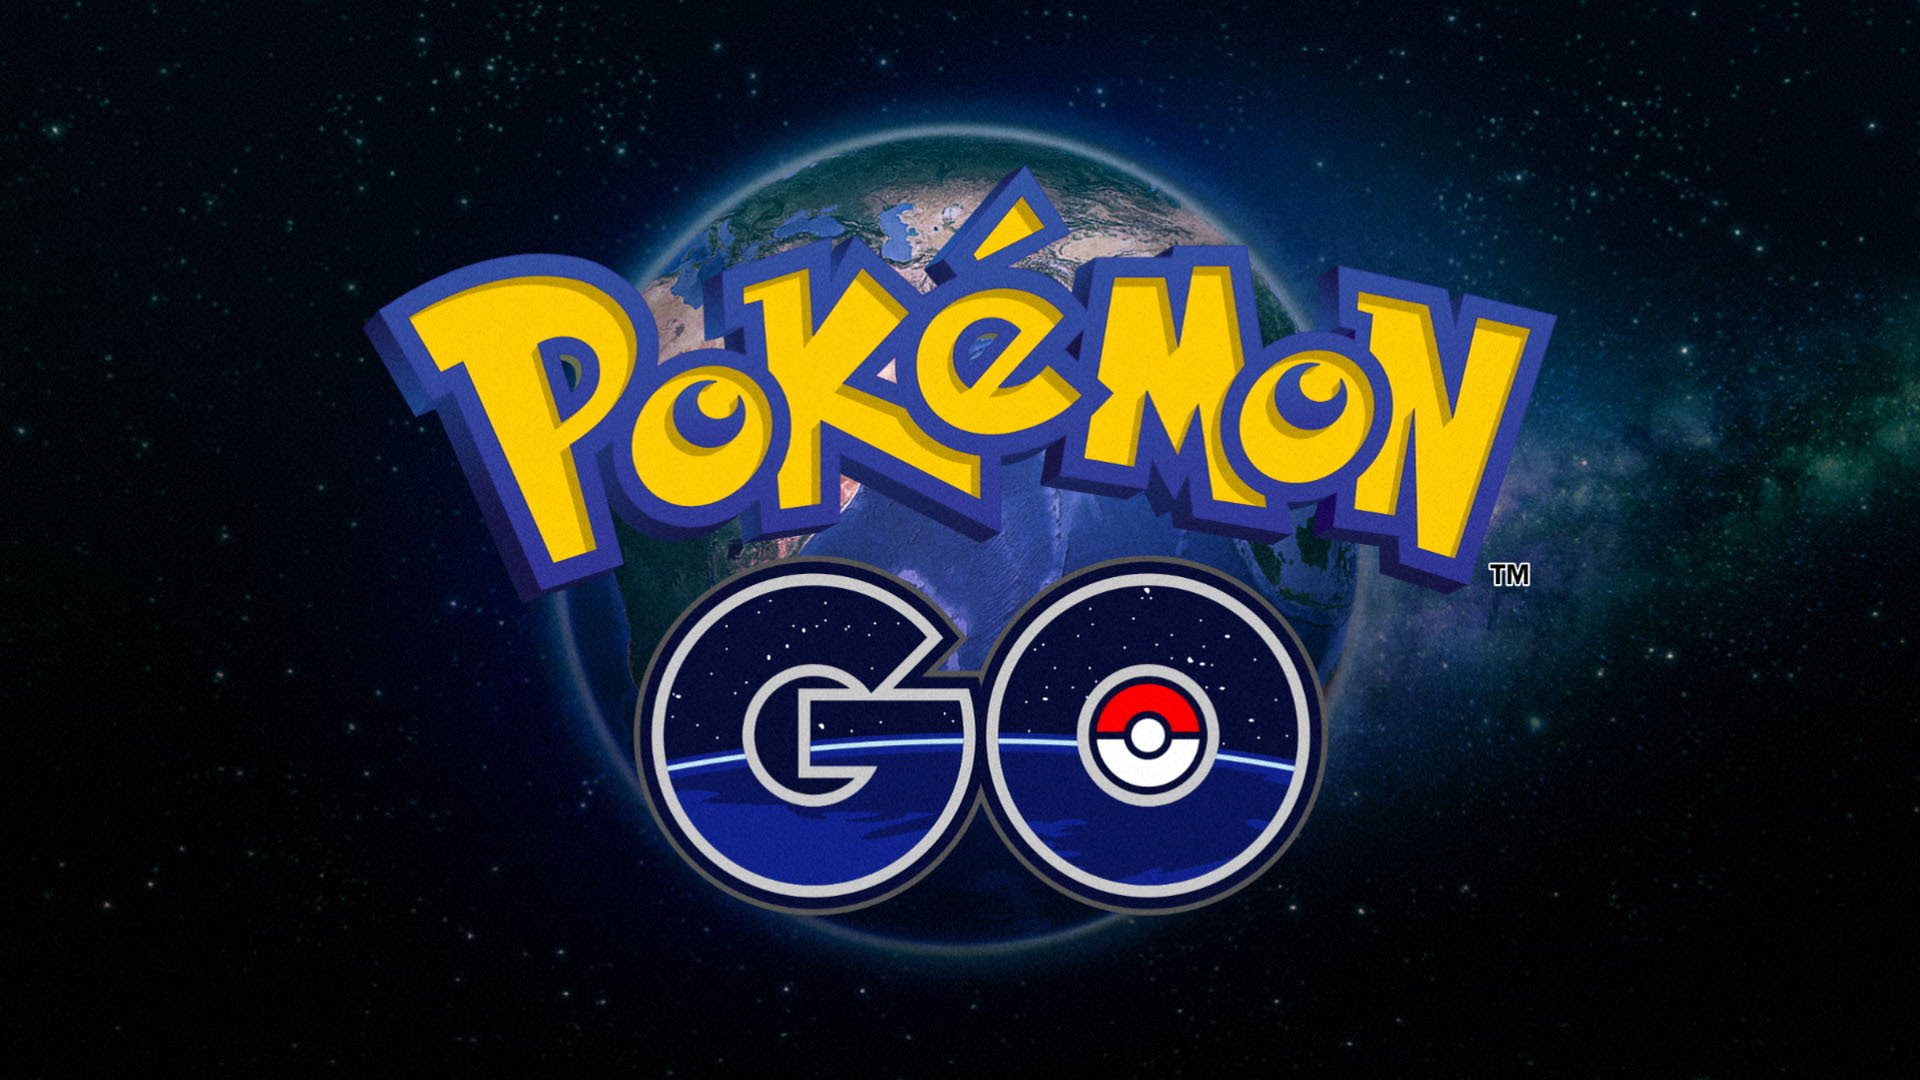 Pokémon GO: Safe to Download or Not?